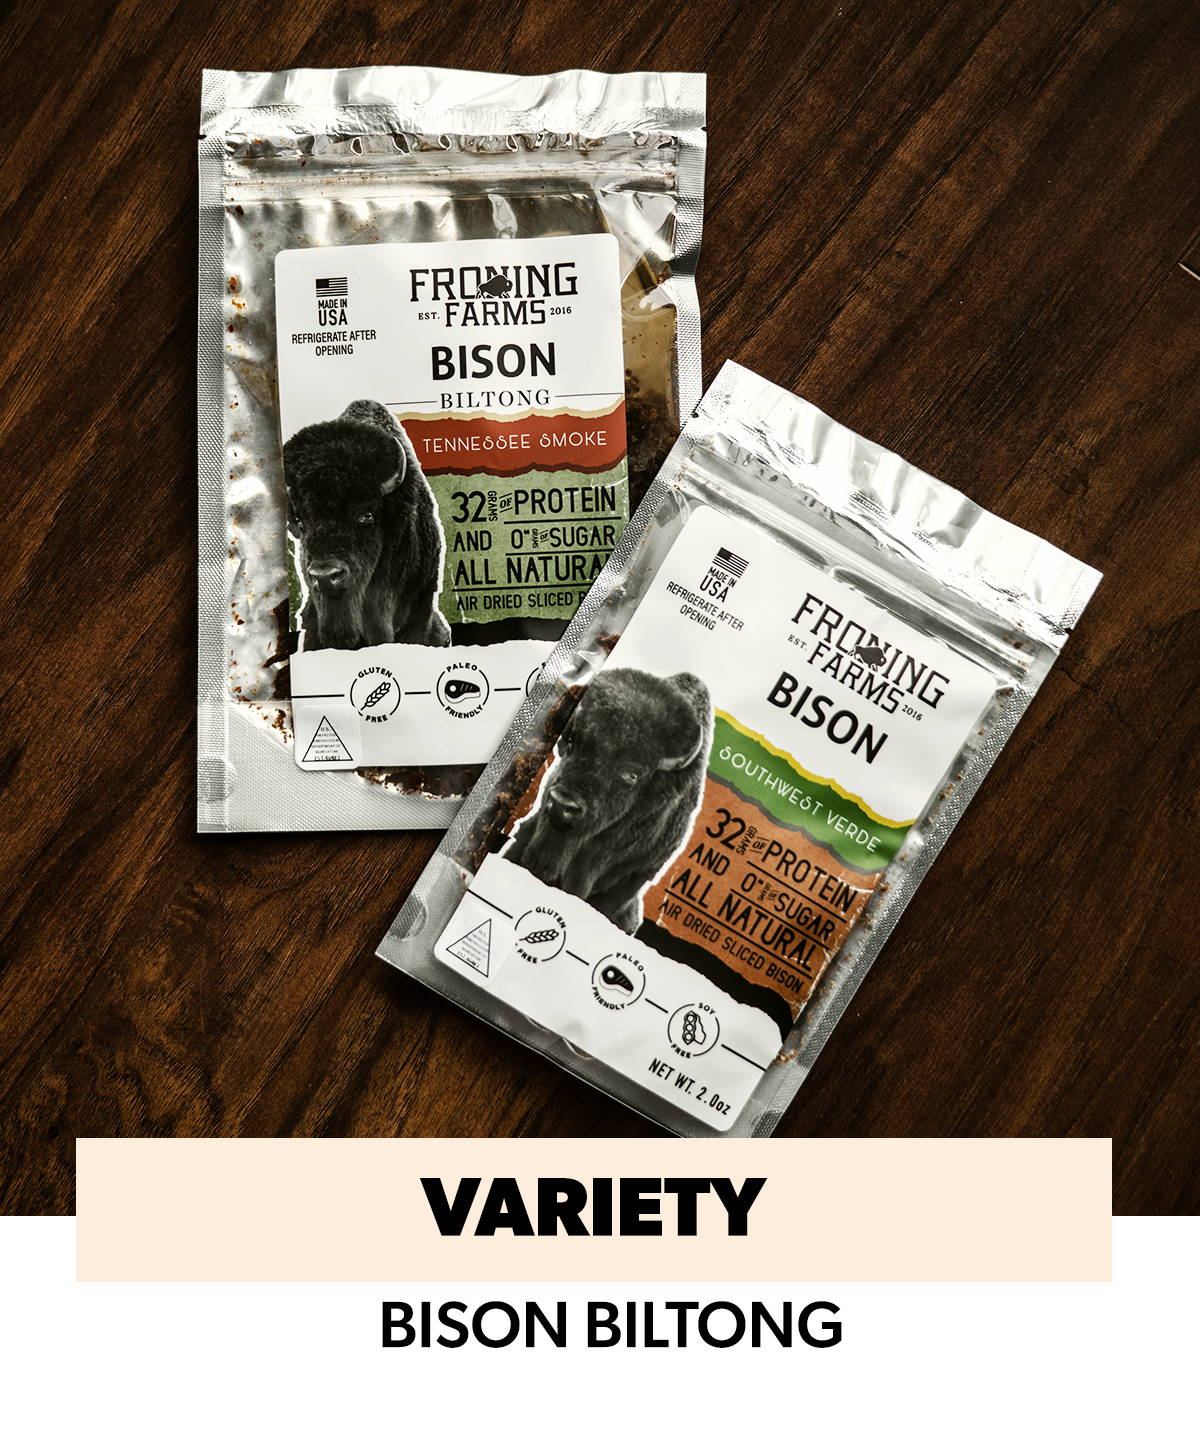 froning farms bitong variety pack